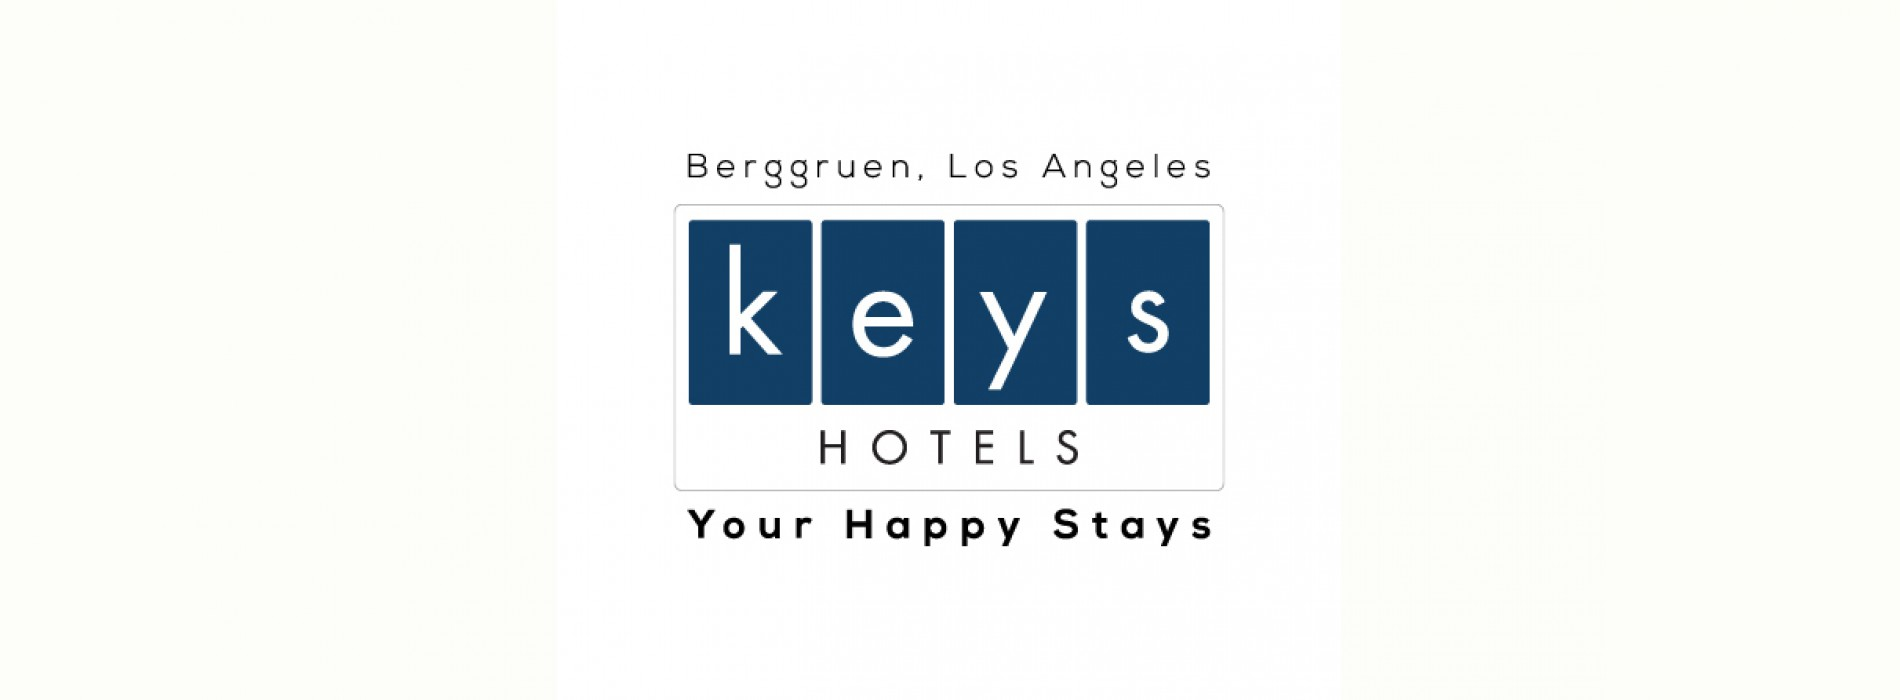 Keys Hotels celebrates 12 years of creating happy experiences